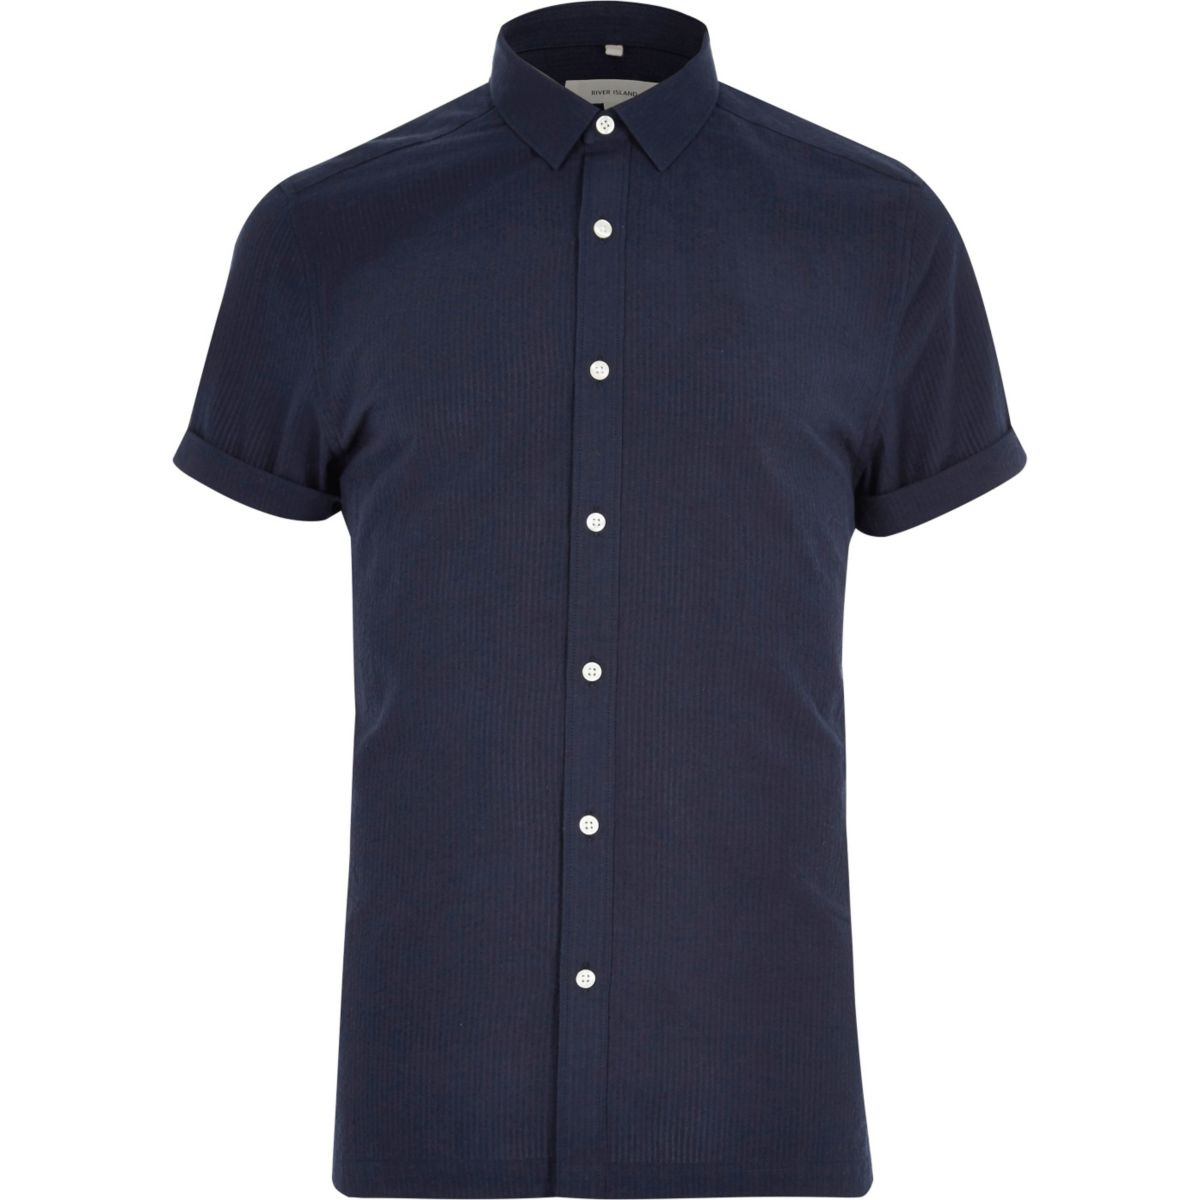 Navy seersucker short sleeve shirt